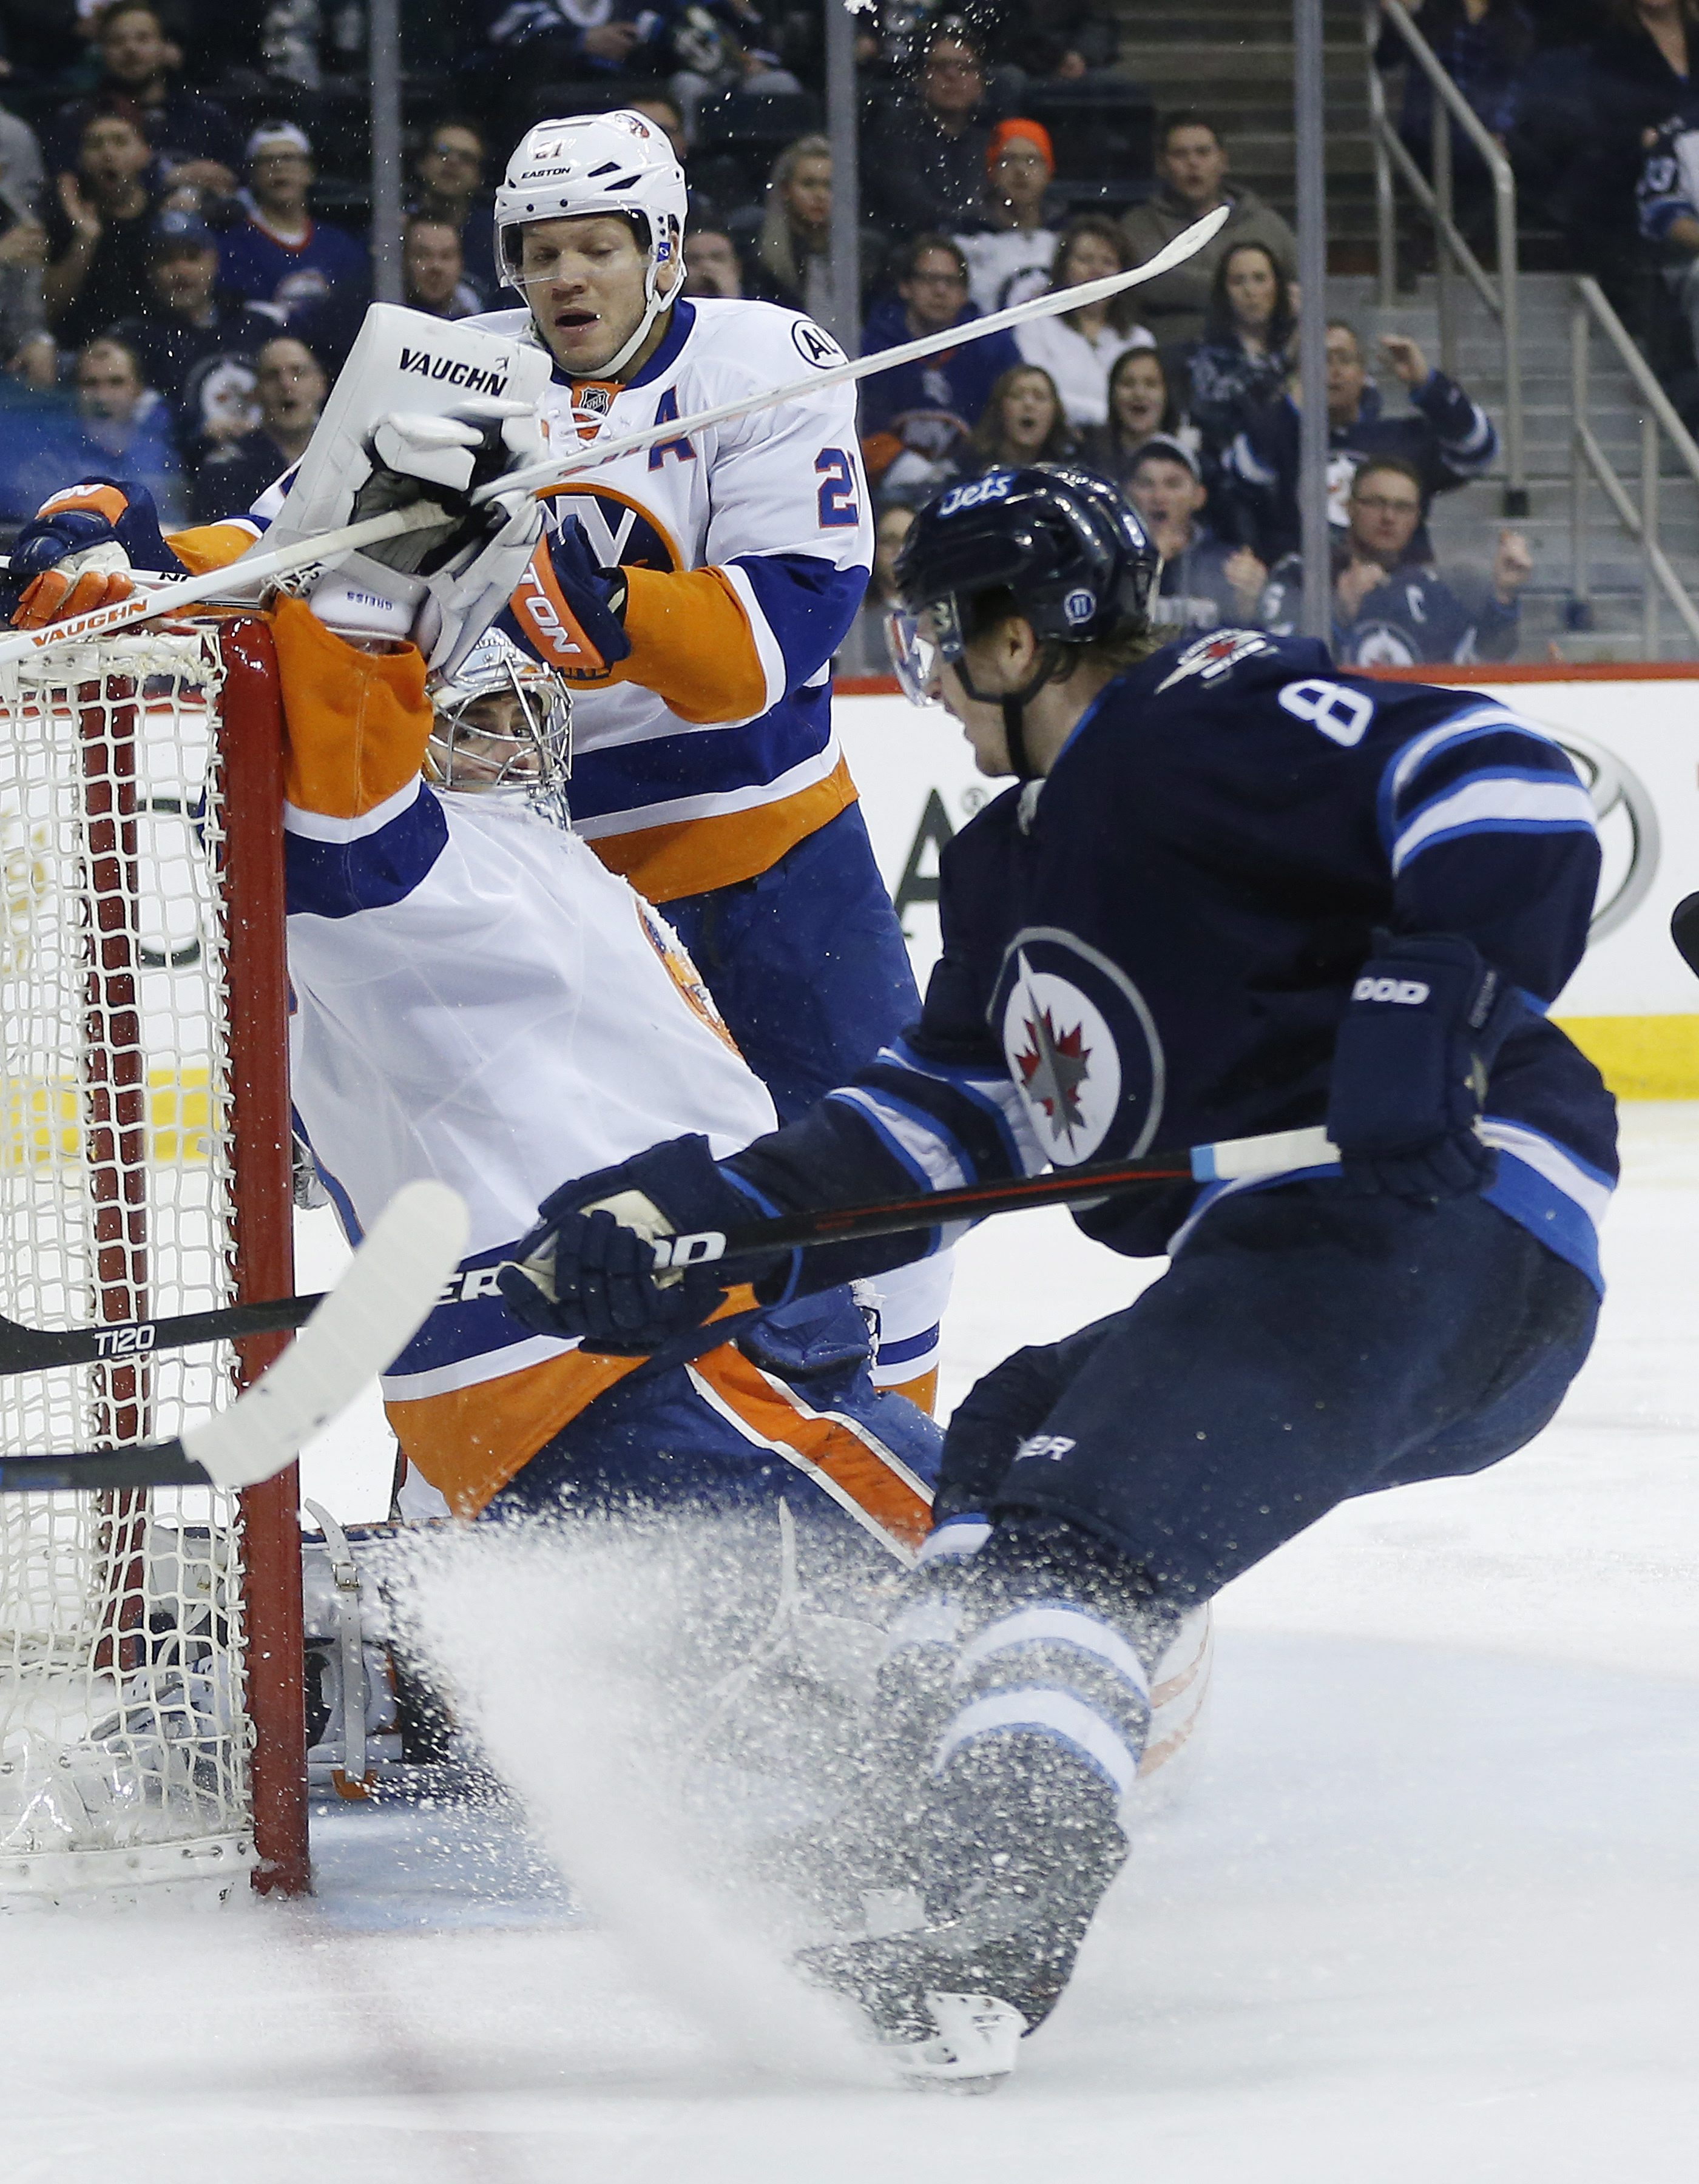 New York Islanders goaltender Thomas Greiss (1) keeps his eye on the puck sitting on his blocker as Winnipeg Jets' Jacob Trouba (8) hopes for a rebound and Islanders' Kyle Okposo (21) defends during second-period NHL hockey game action in Winnipeg, Manito